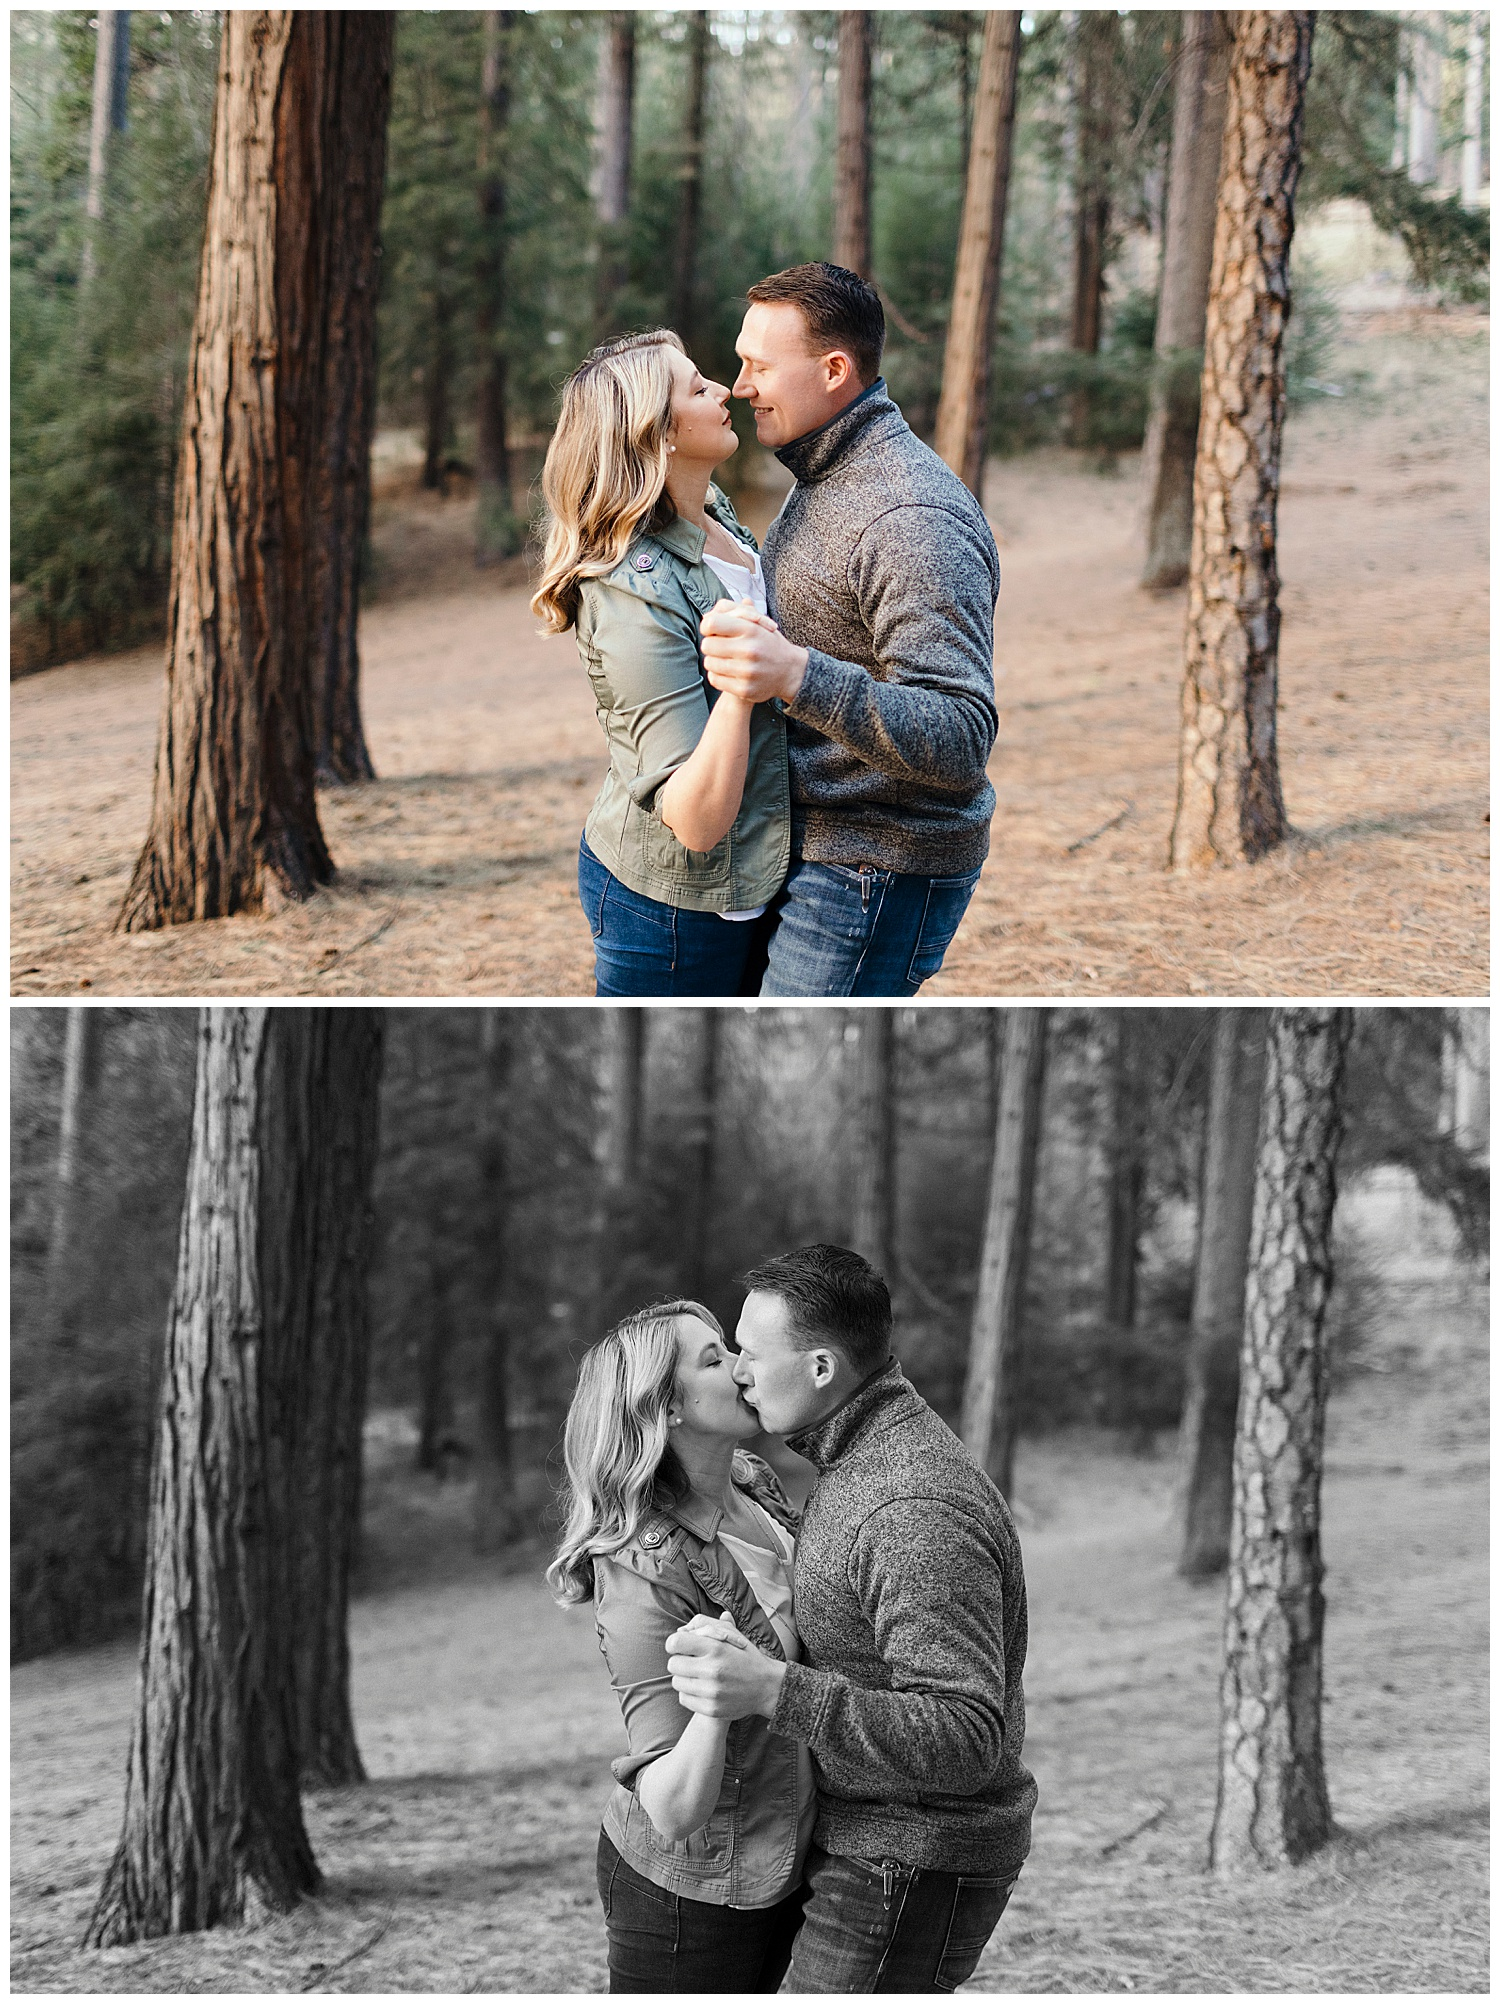 Sweet engagement photography in el dorado national forest